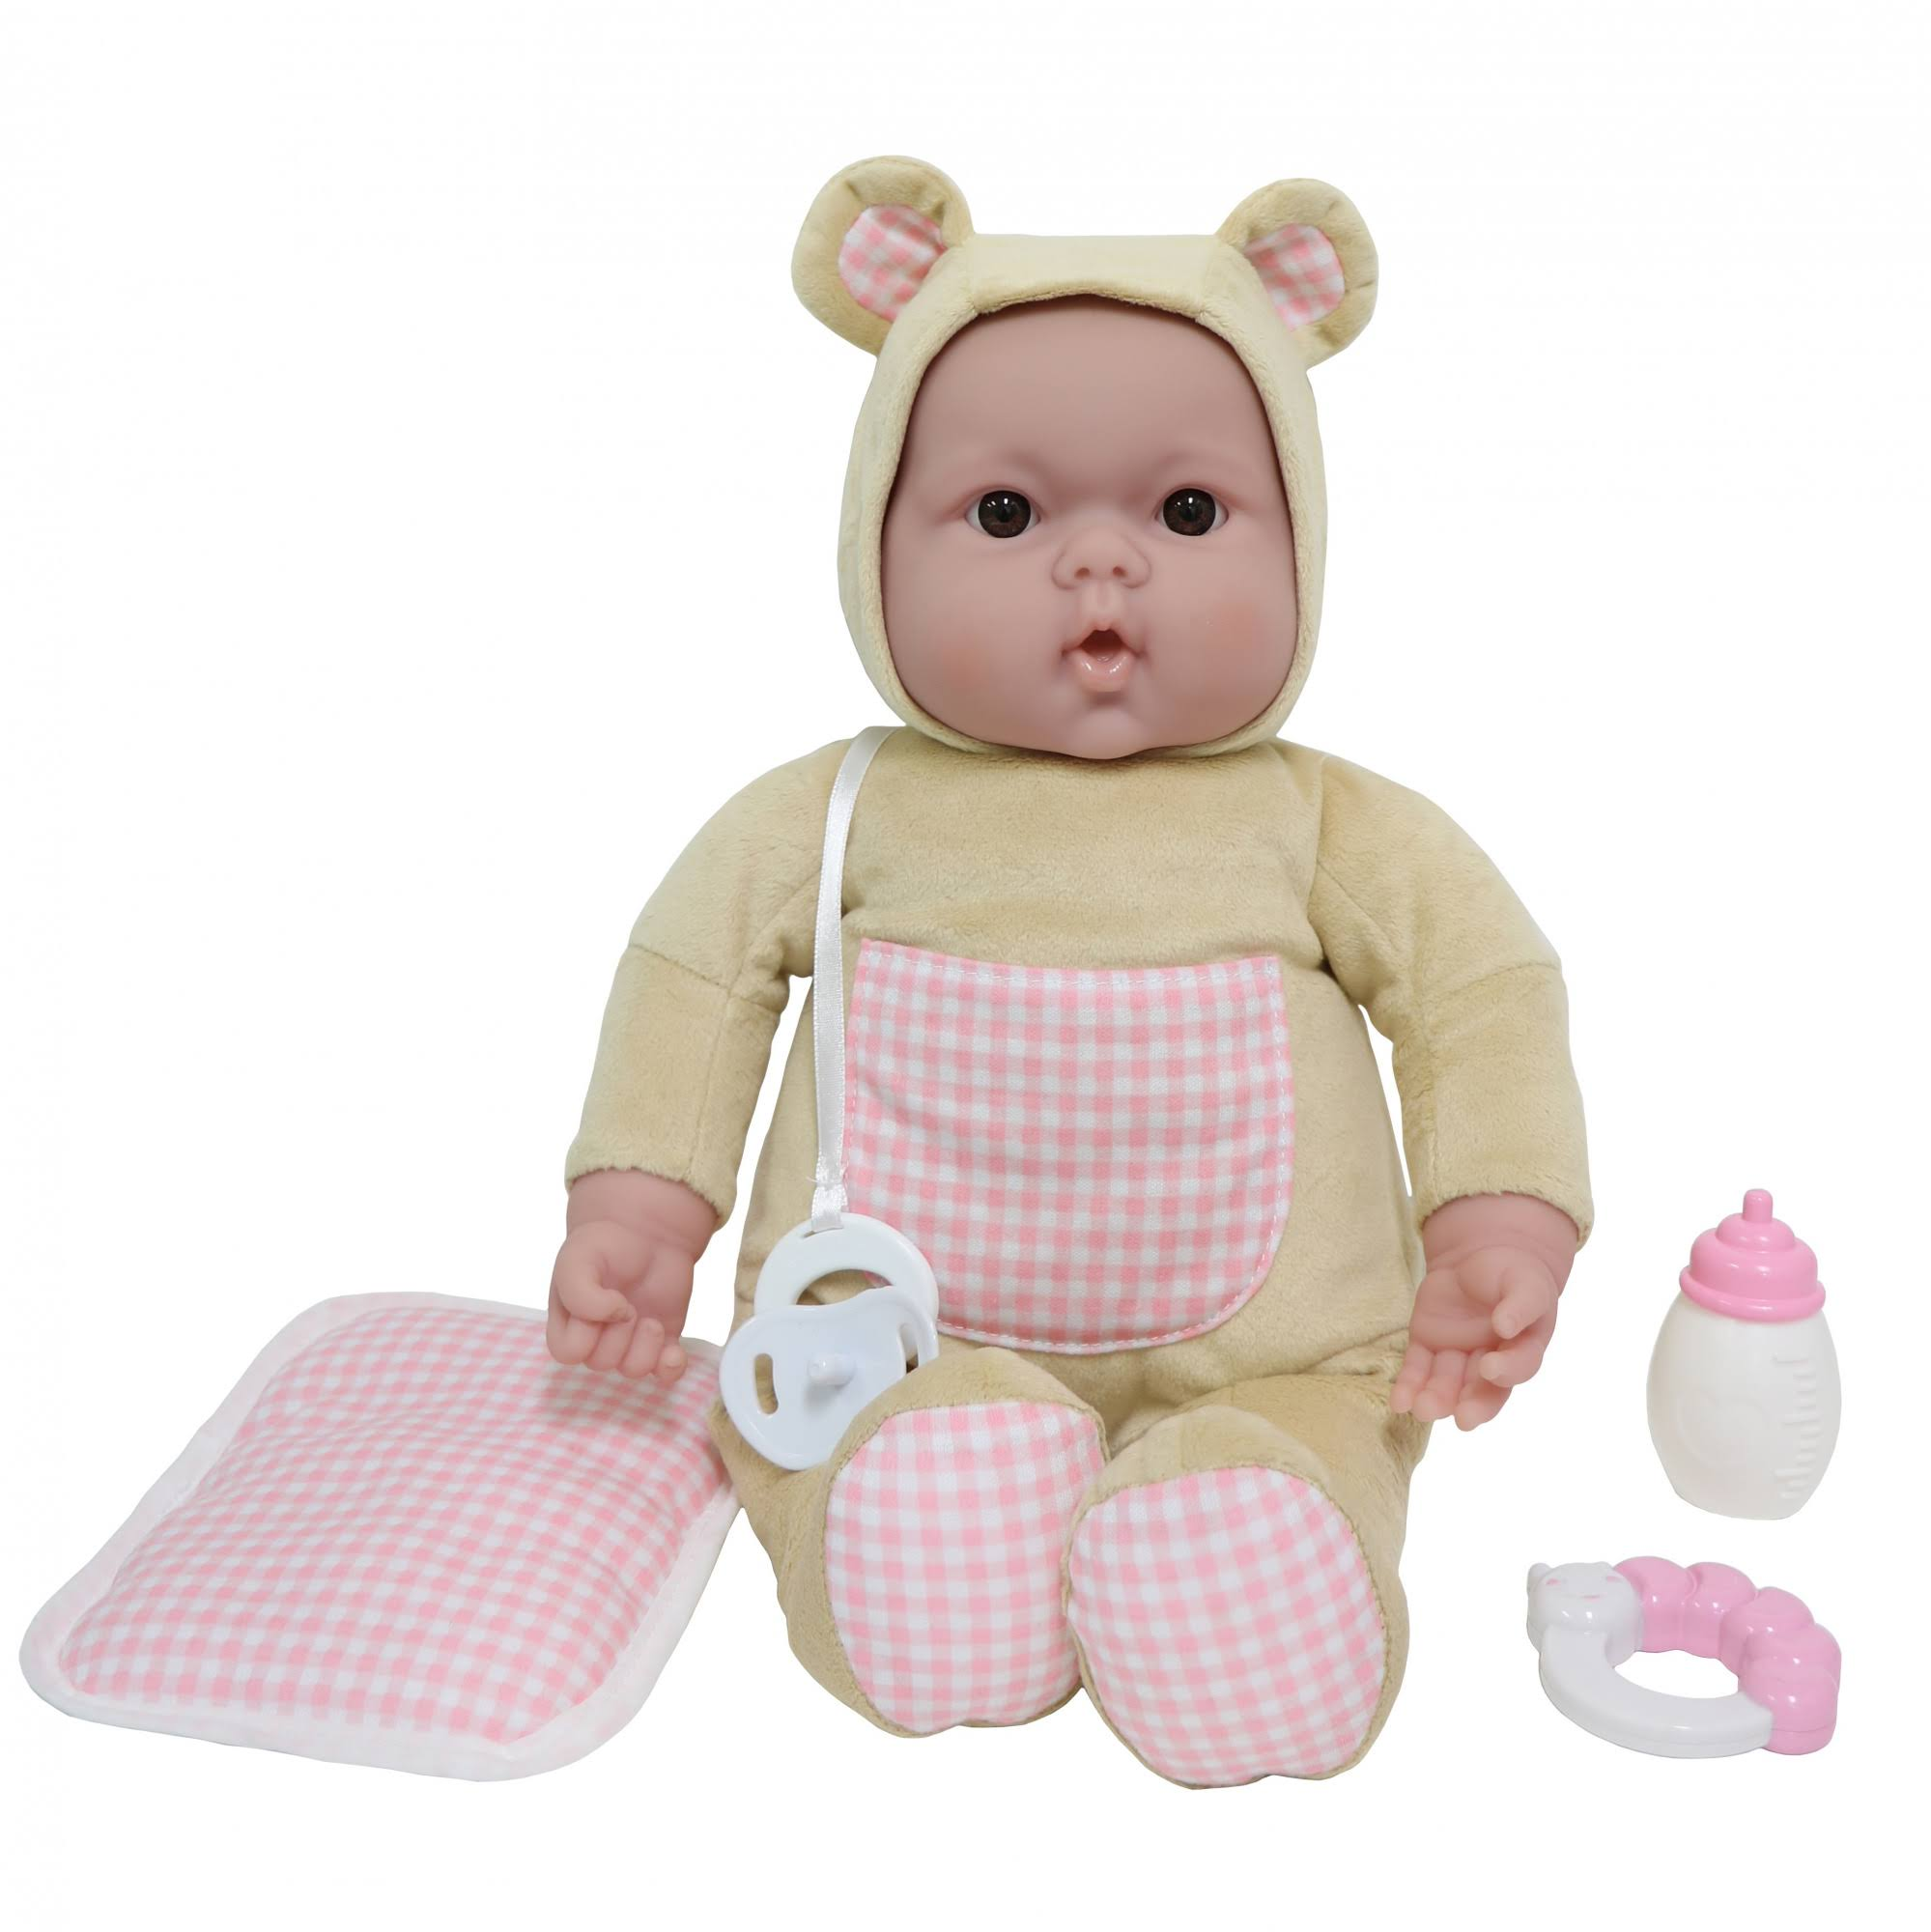 JC Toys Lots to Cuddle Babies Bed Time Friend 15 Soft Body Baby Doll and Accessories, Size: 15\, Beige